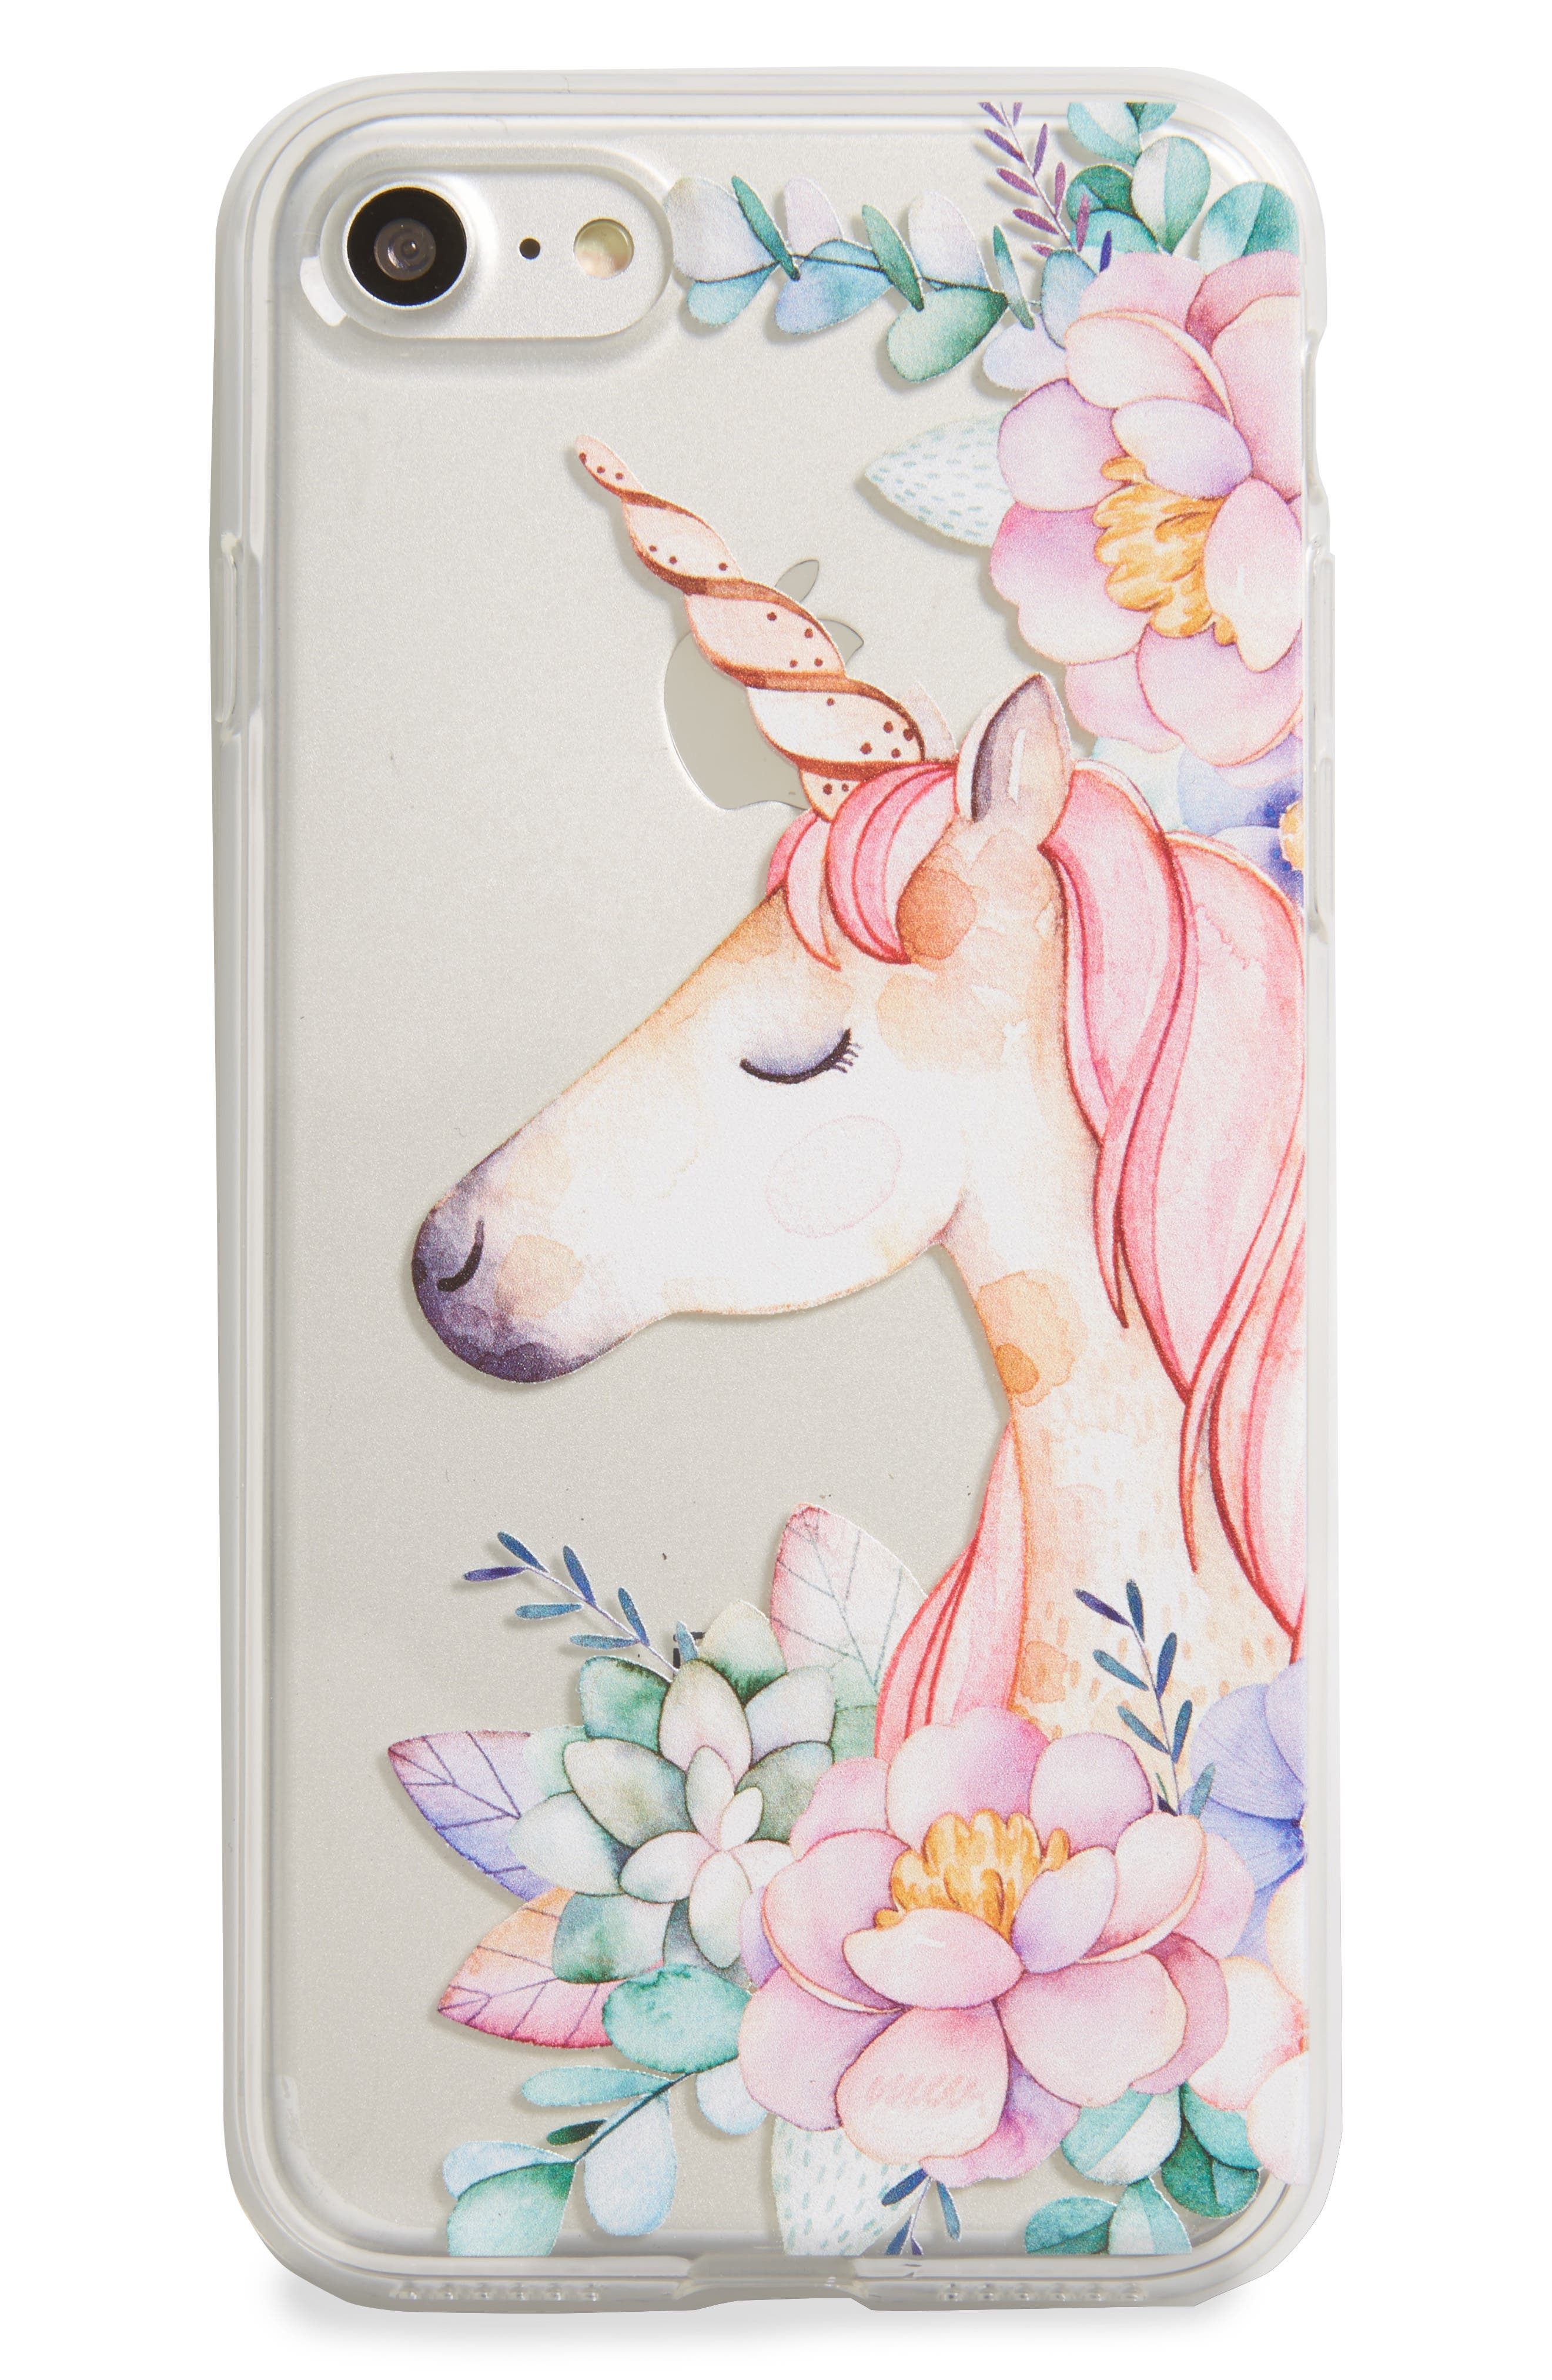 Alternate Image 1 Selected - MILKYWAY Unicorn & Flowers iPhone 7 Case